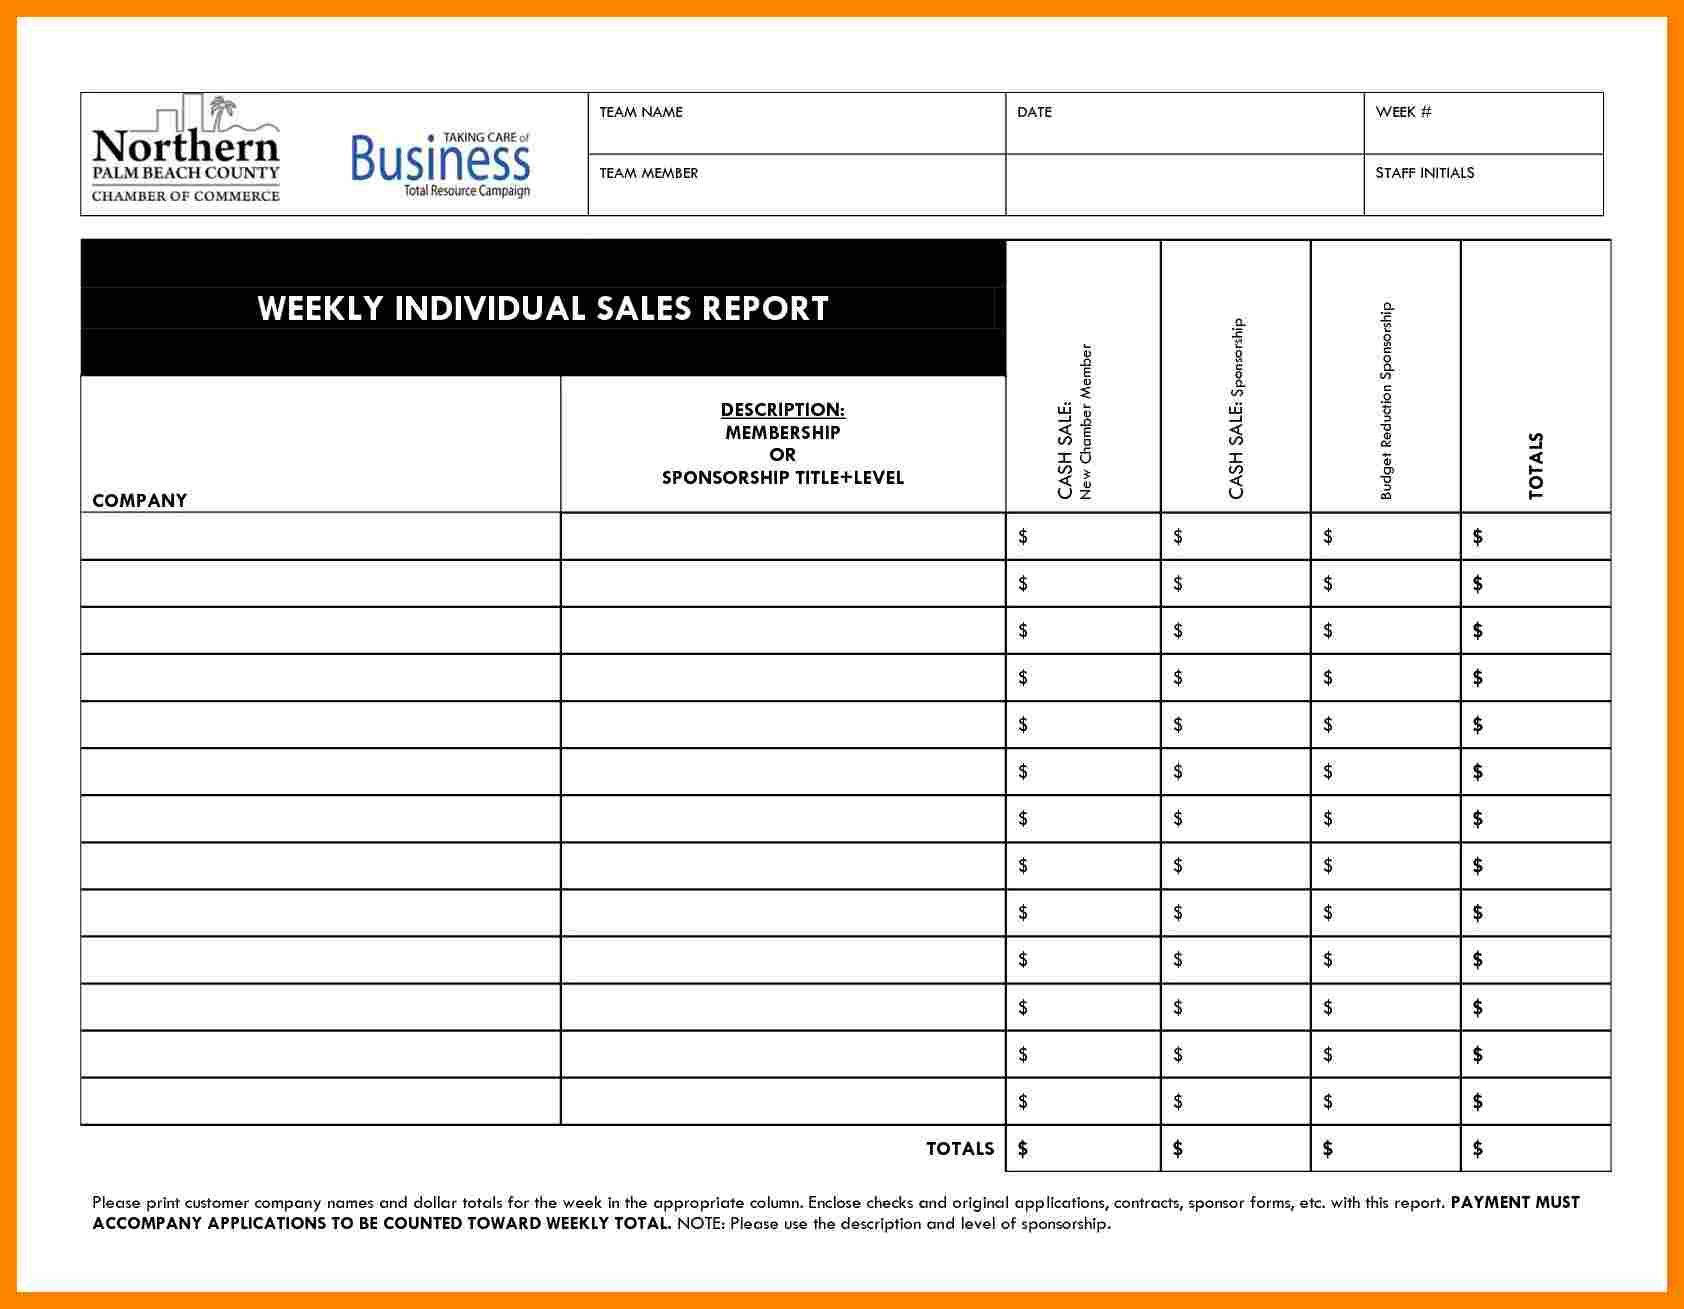 010 Daily Activity Report Template Free Download Salesll Pertaining To Daily Sales Call Report Te Sales Report Template Report Template Templates Free Download Weekly sales report template excel